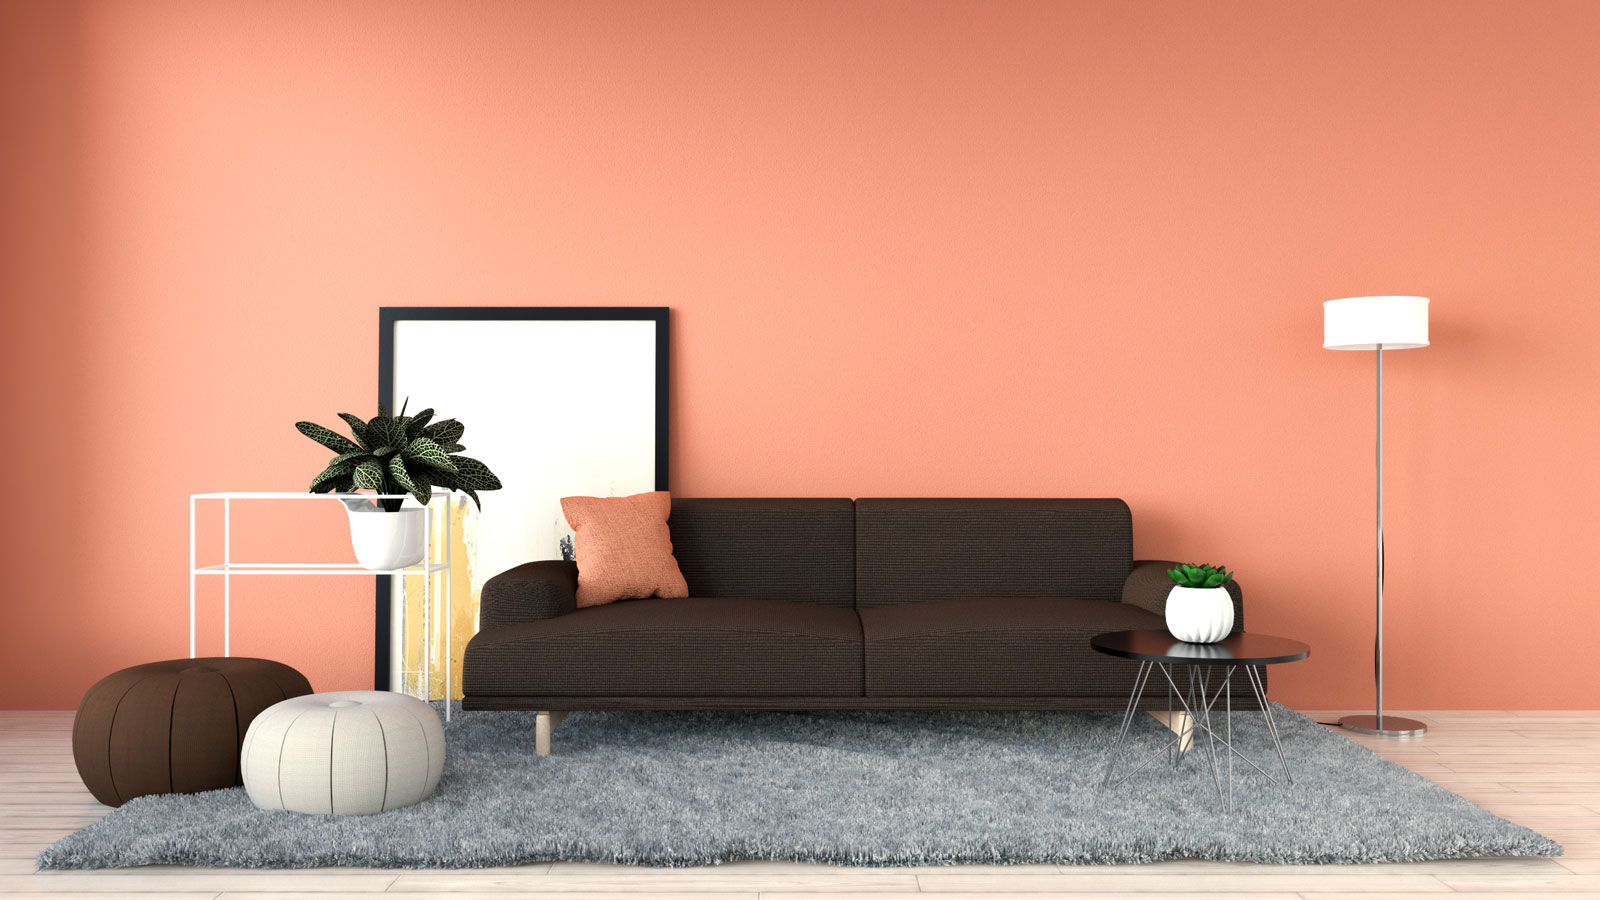 Terracotta wall with a brown sofa